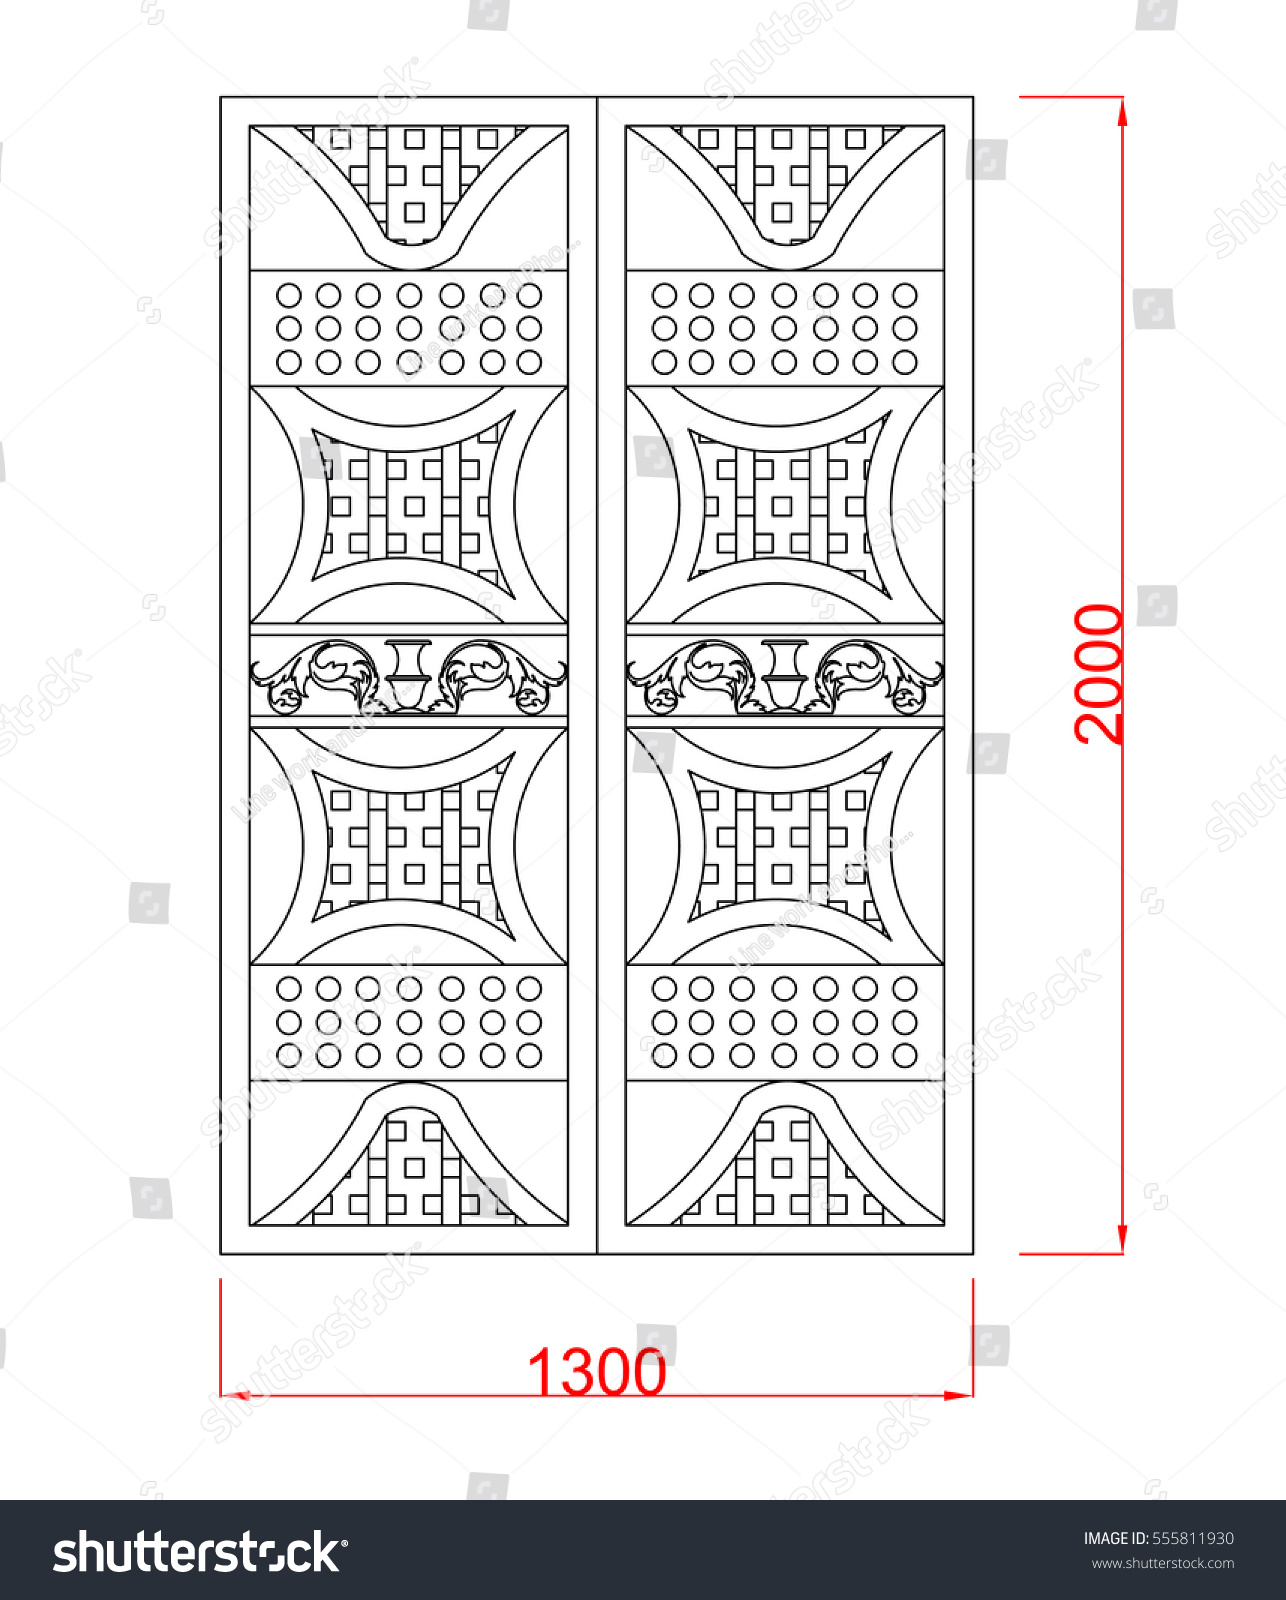 Superior Door Vector Image With Dimension Black Paint In The White Background